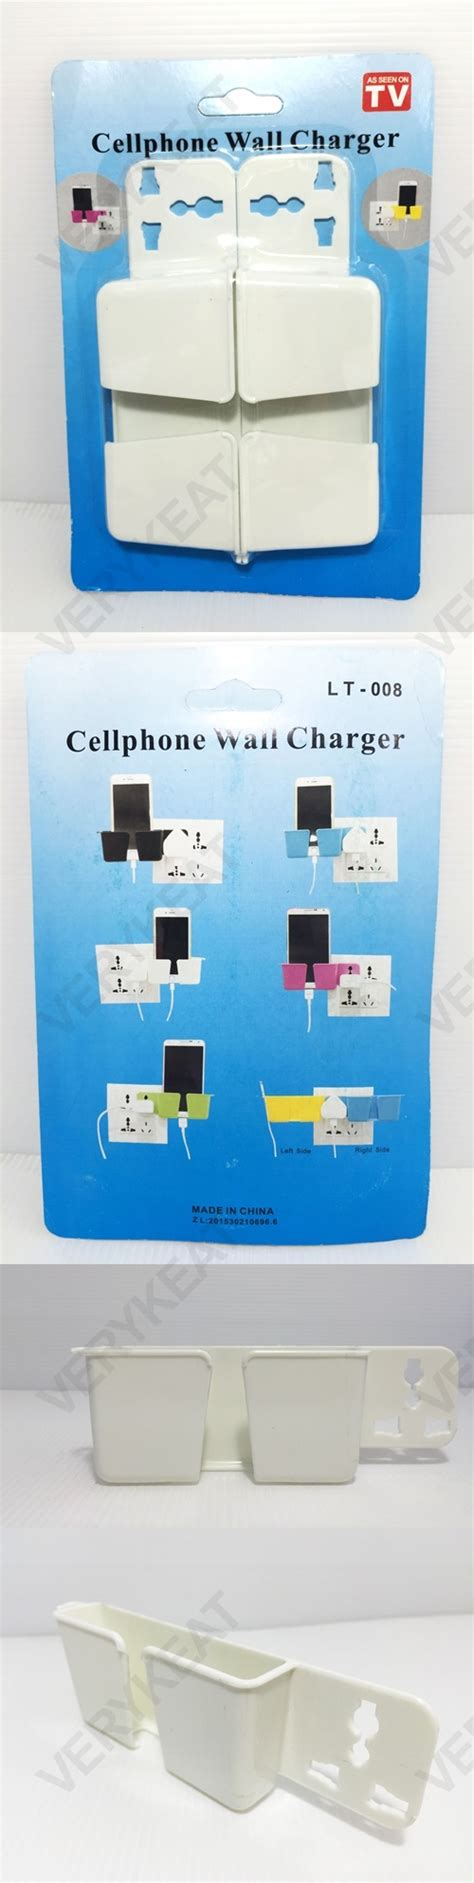 Rhg390 As Seen On Tv Handphone Cellphone Wall Charger Holder Kotak Isi as seen on tv handphone cellphone wa end 10 6 2018 3 01 am